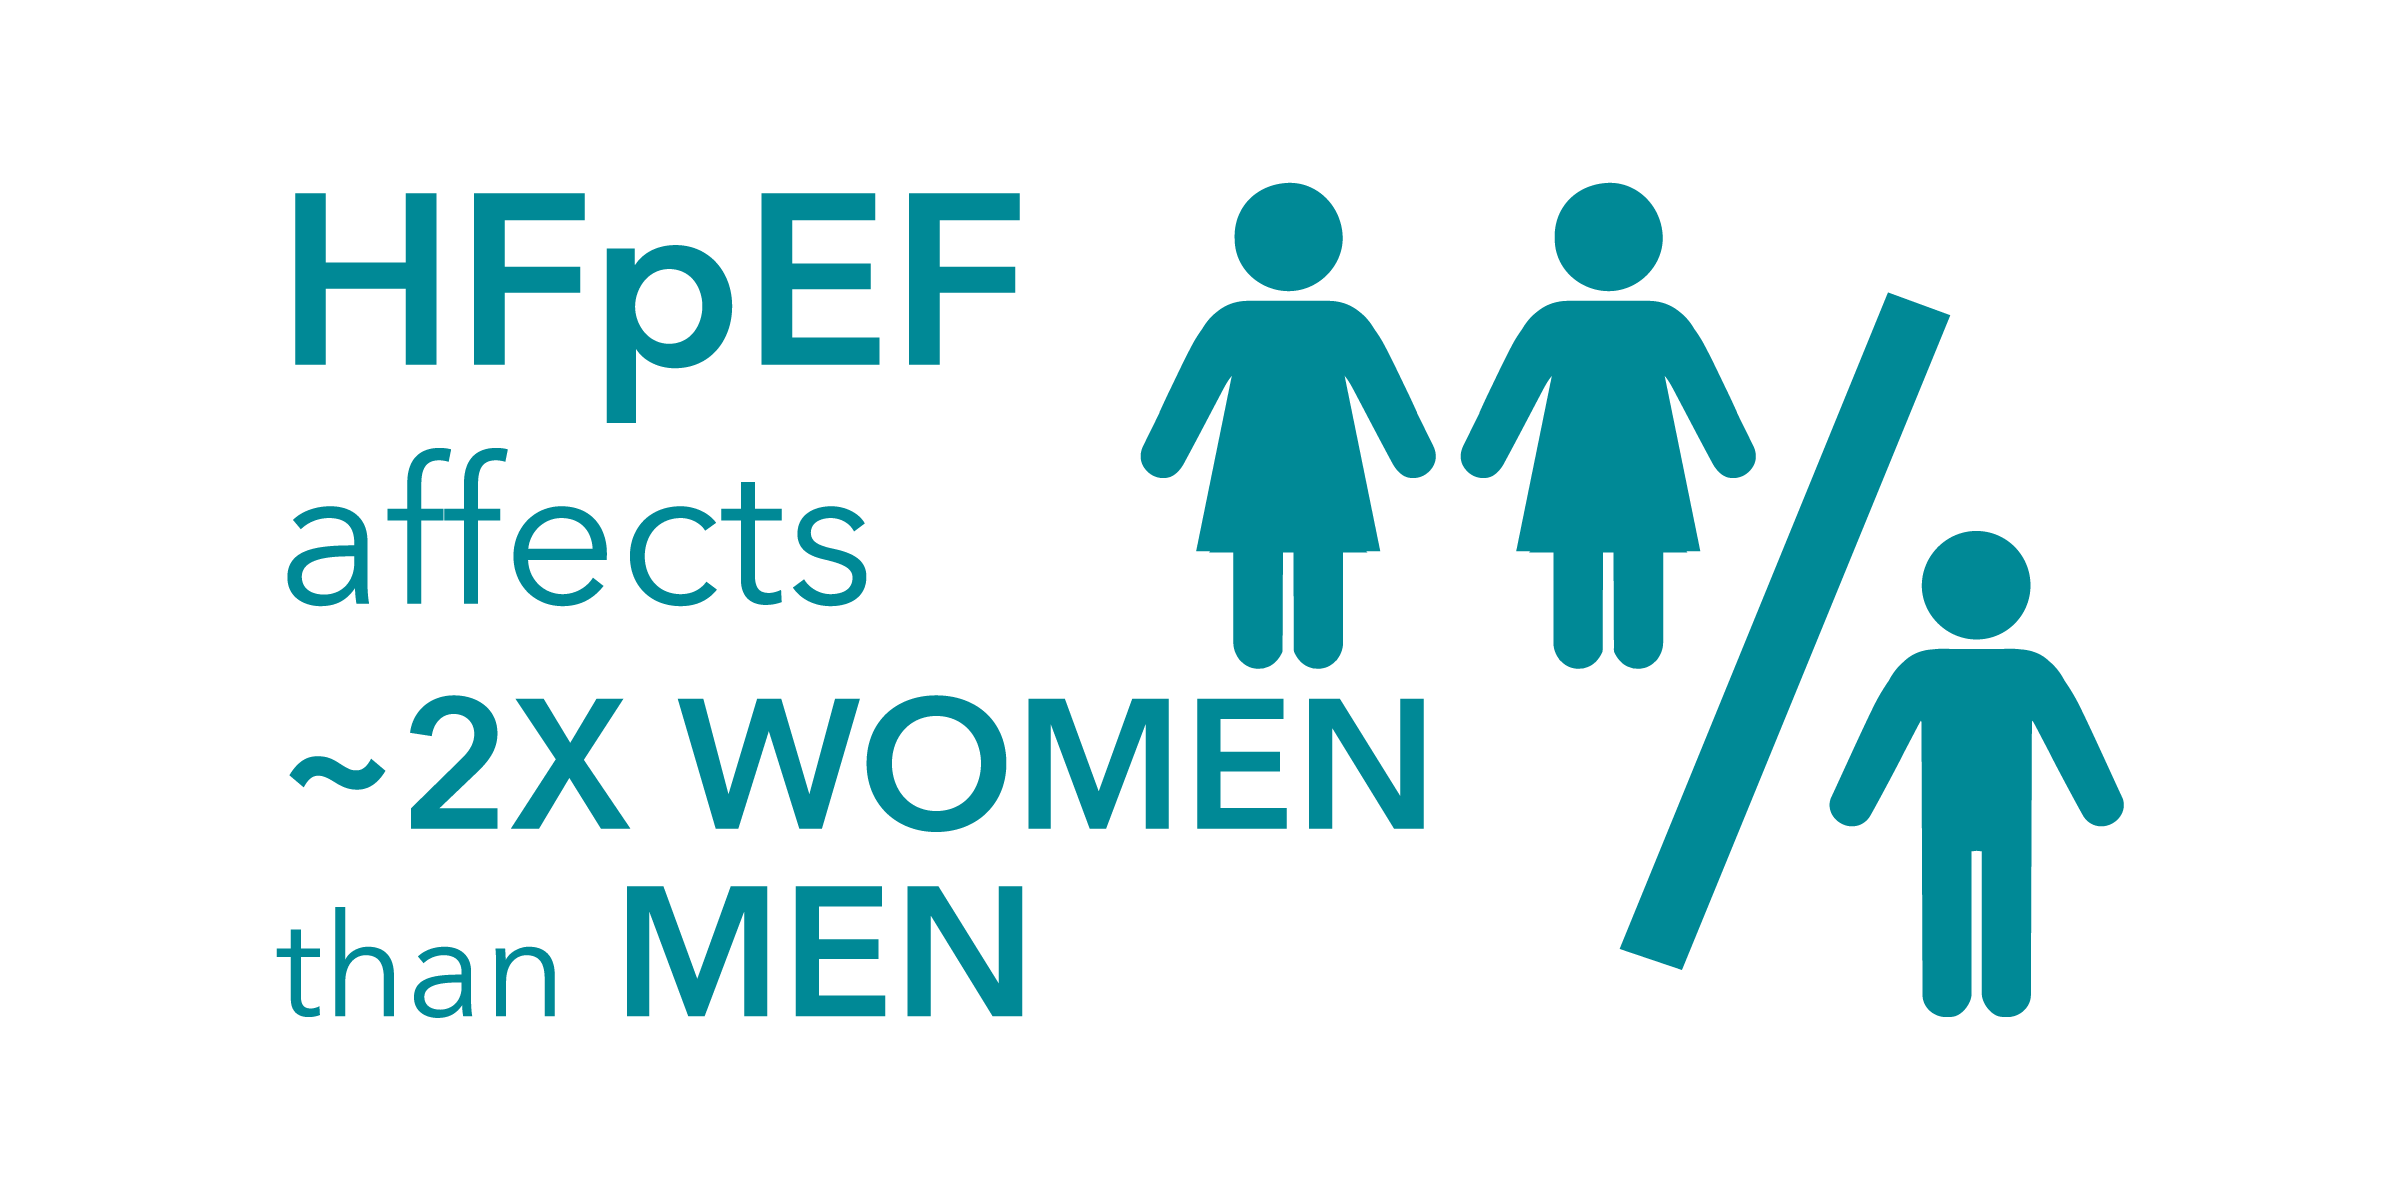 HFpEF affects twice as many women as men